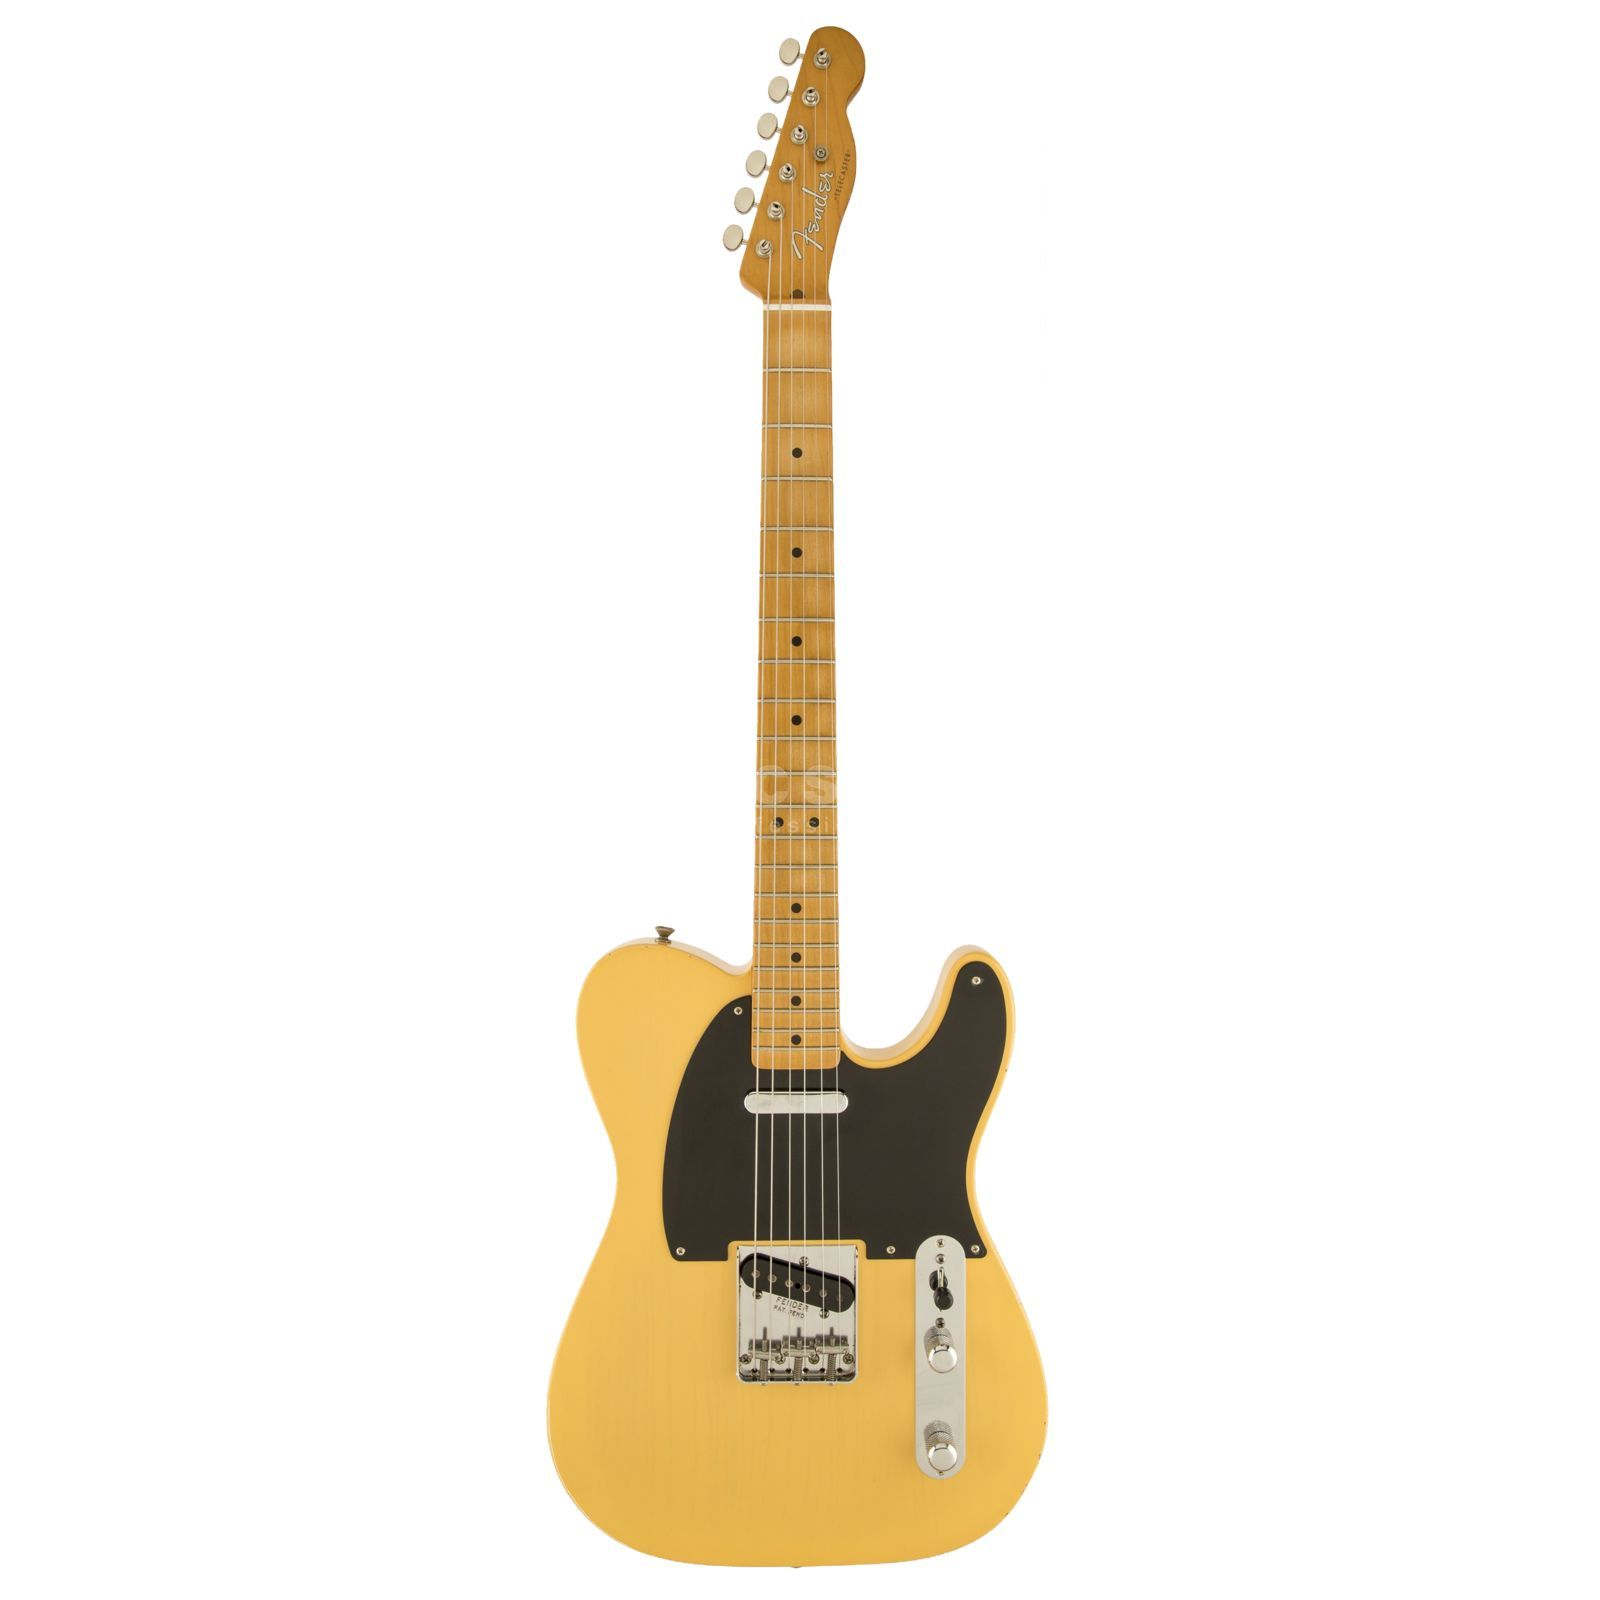 Fender Road Worn 50s Tele MN BL Blonde, inkl. Bag Produktbild